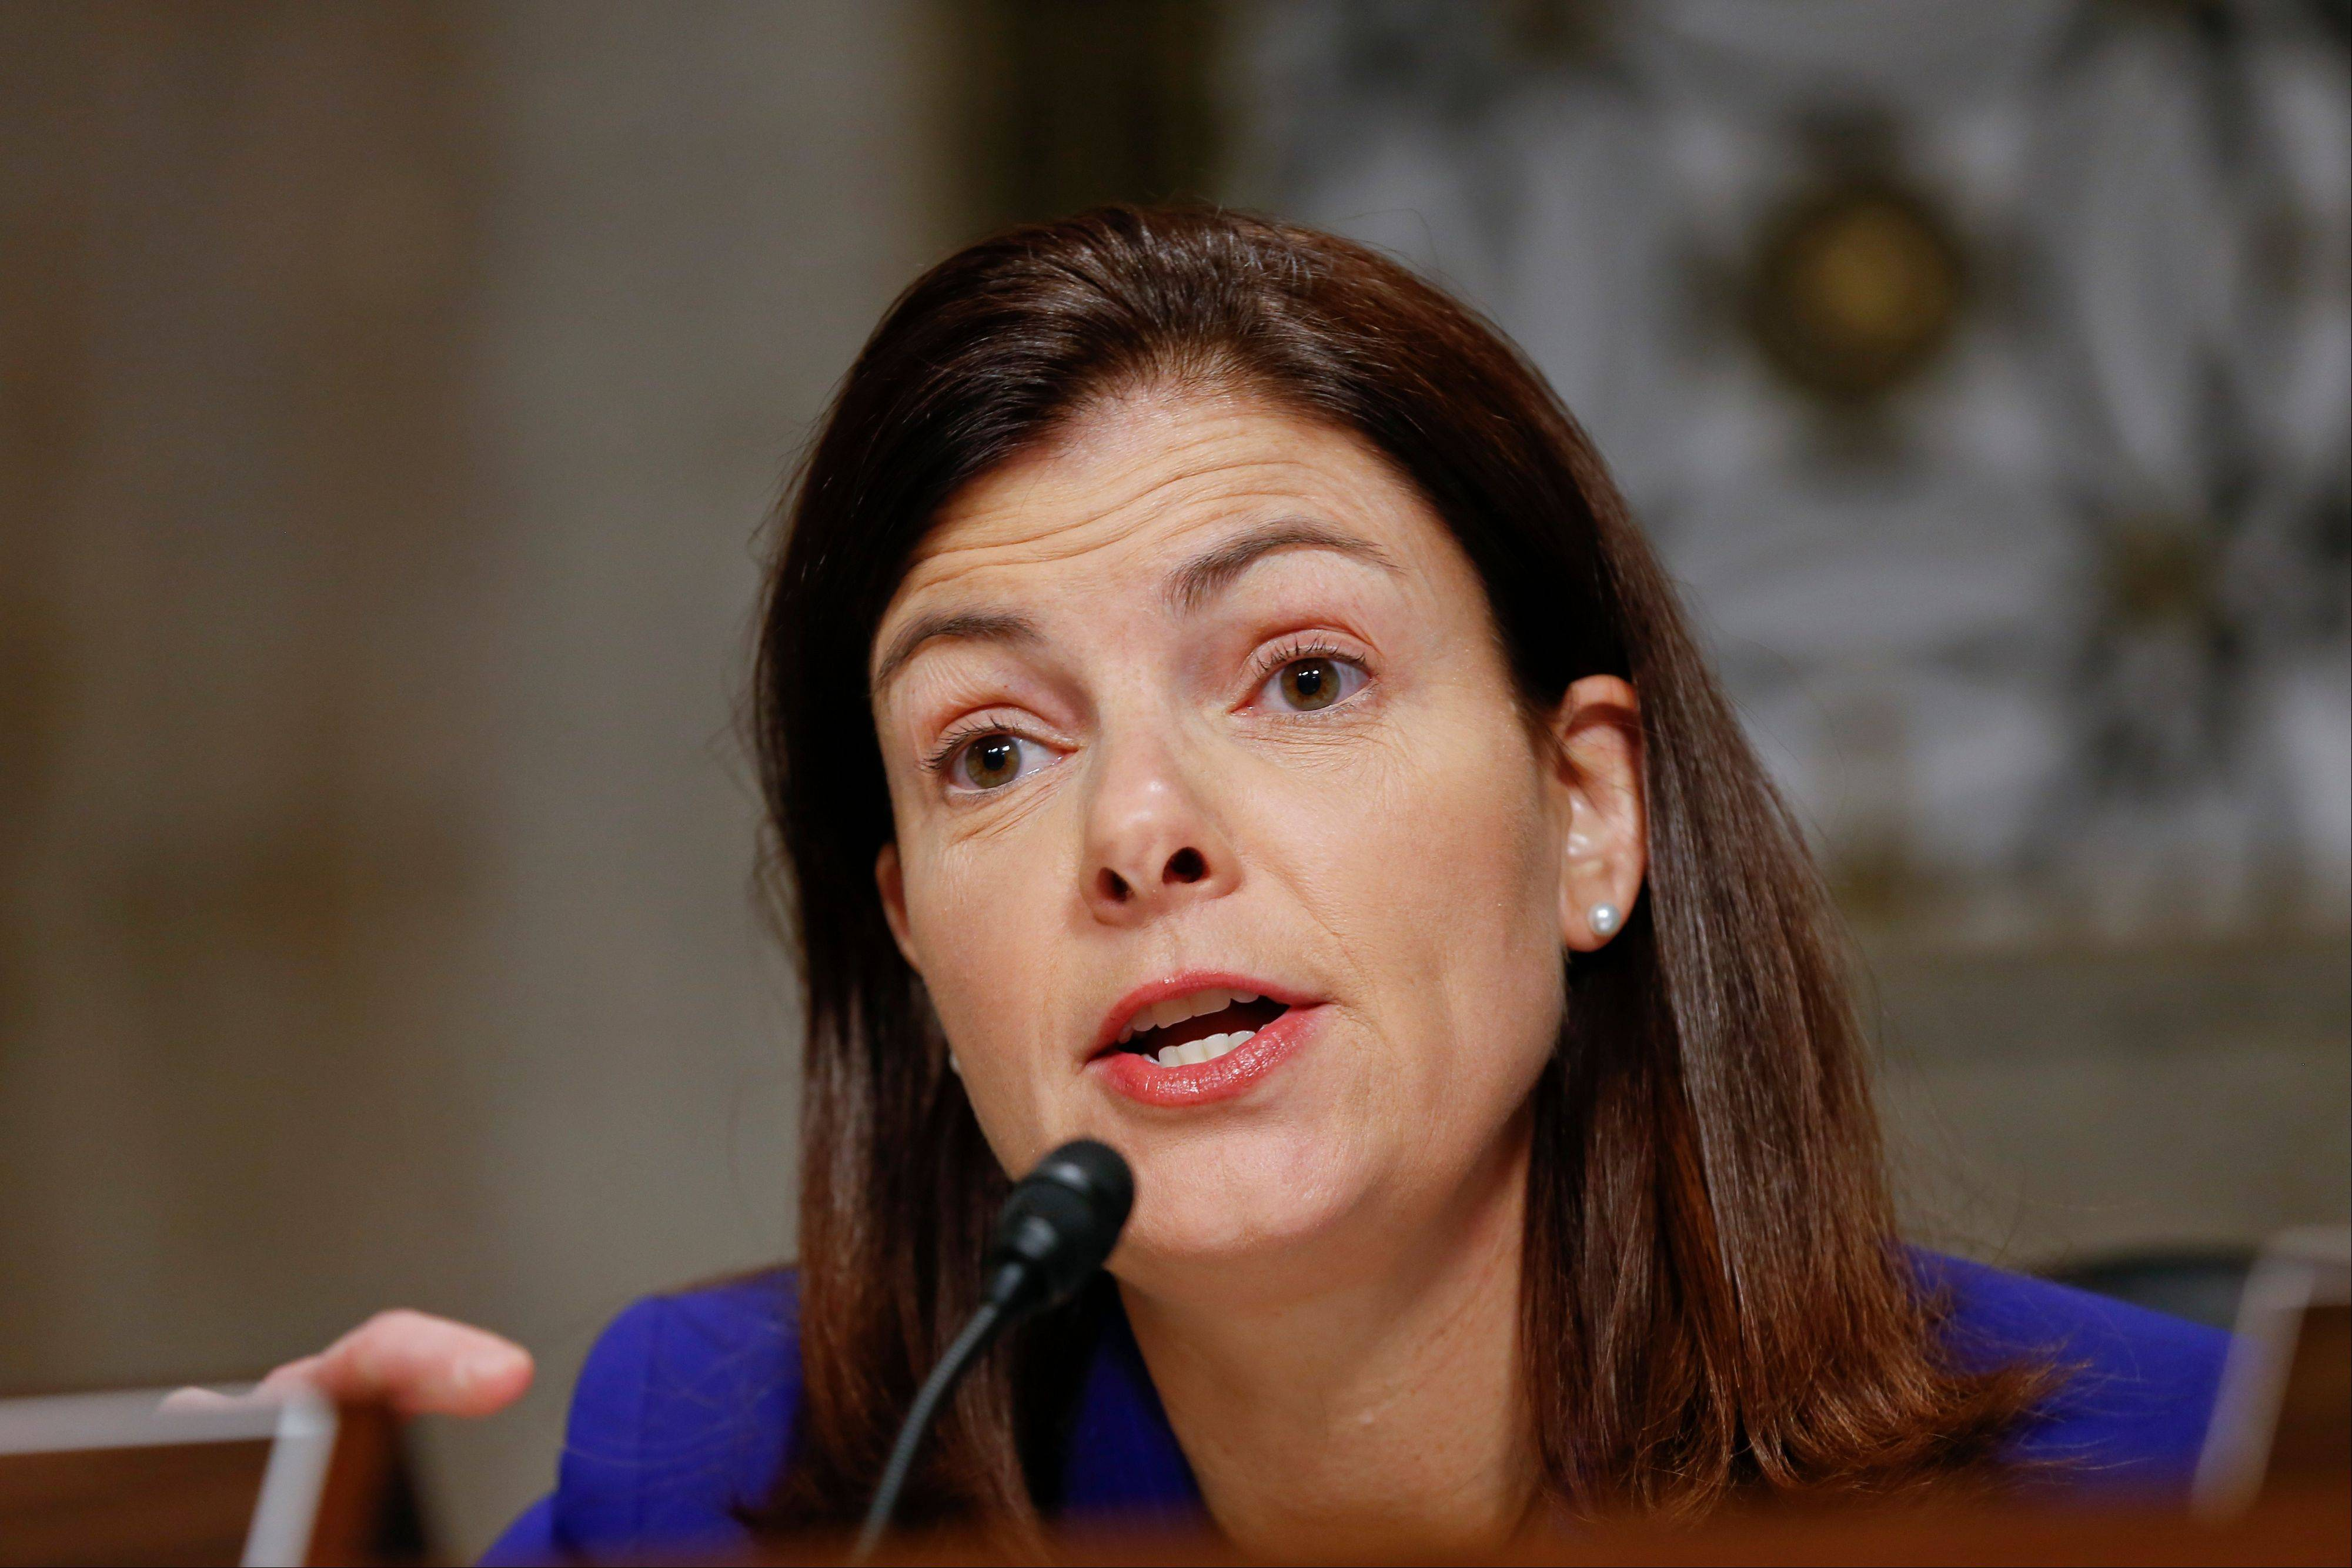 Senate Armed Services Committee member Sen. Kelly Ayotte, R-N.H. Gun control forces are targeting Sens. Ayotte, Max Baucus and others as they struggle to persuade five senators to switch their votes and revive the rejected effort to expand background checks to more firearms buyers.